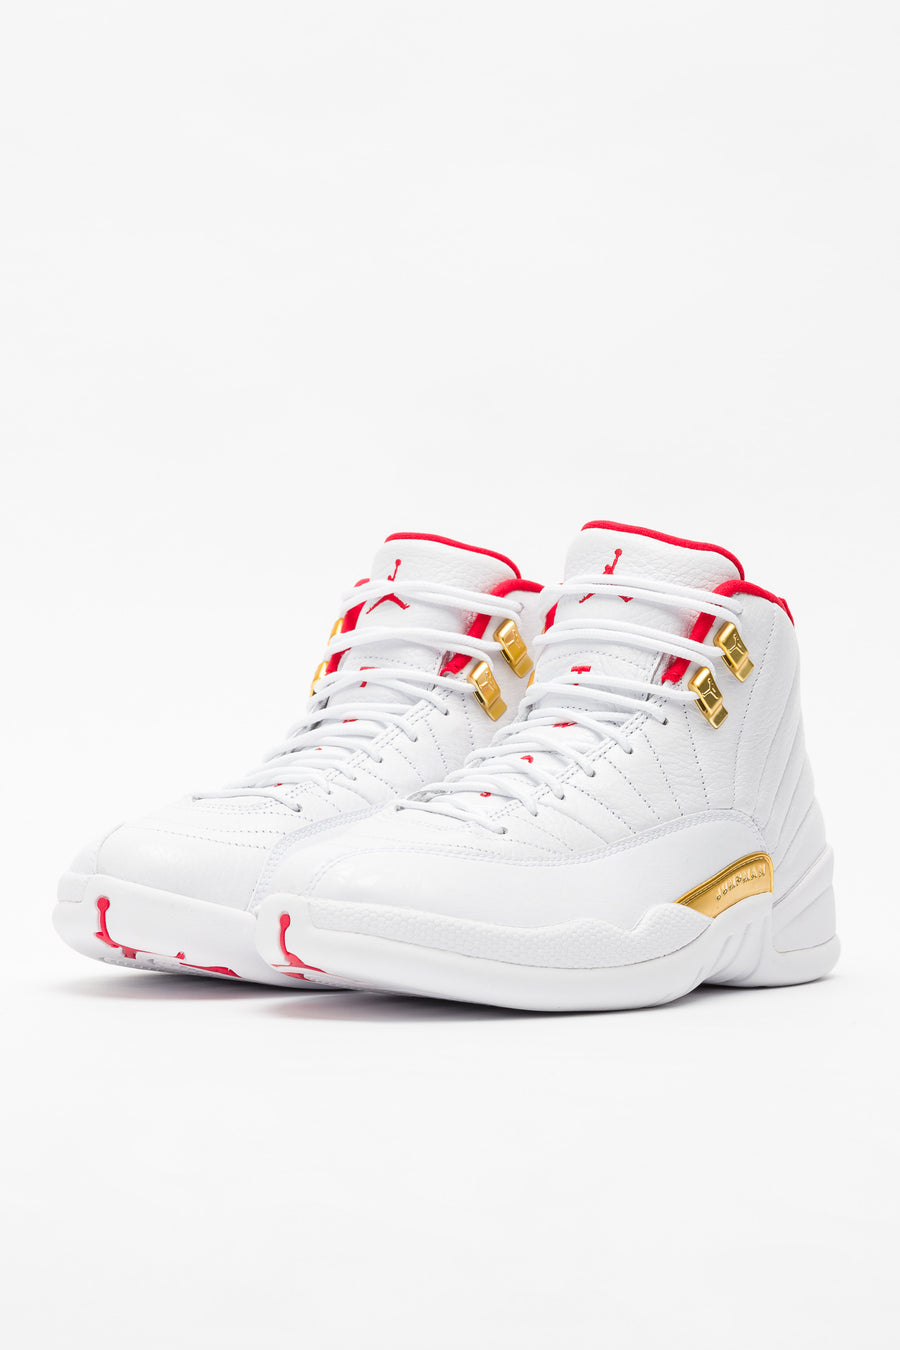 Jordan Air Jordan 12 Retro in White/Red - Notre